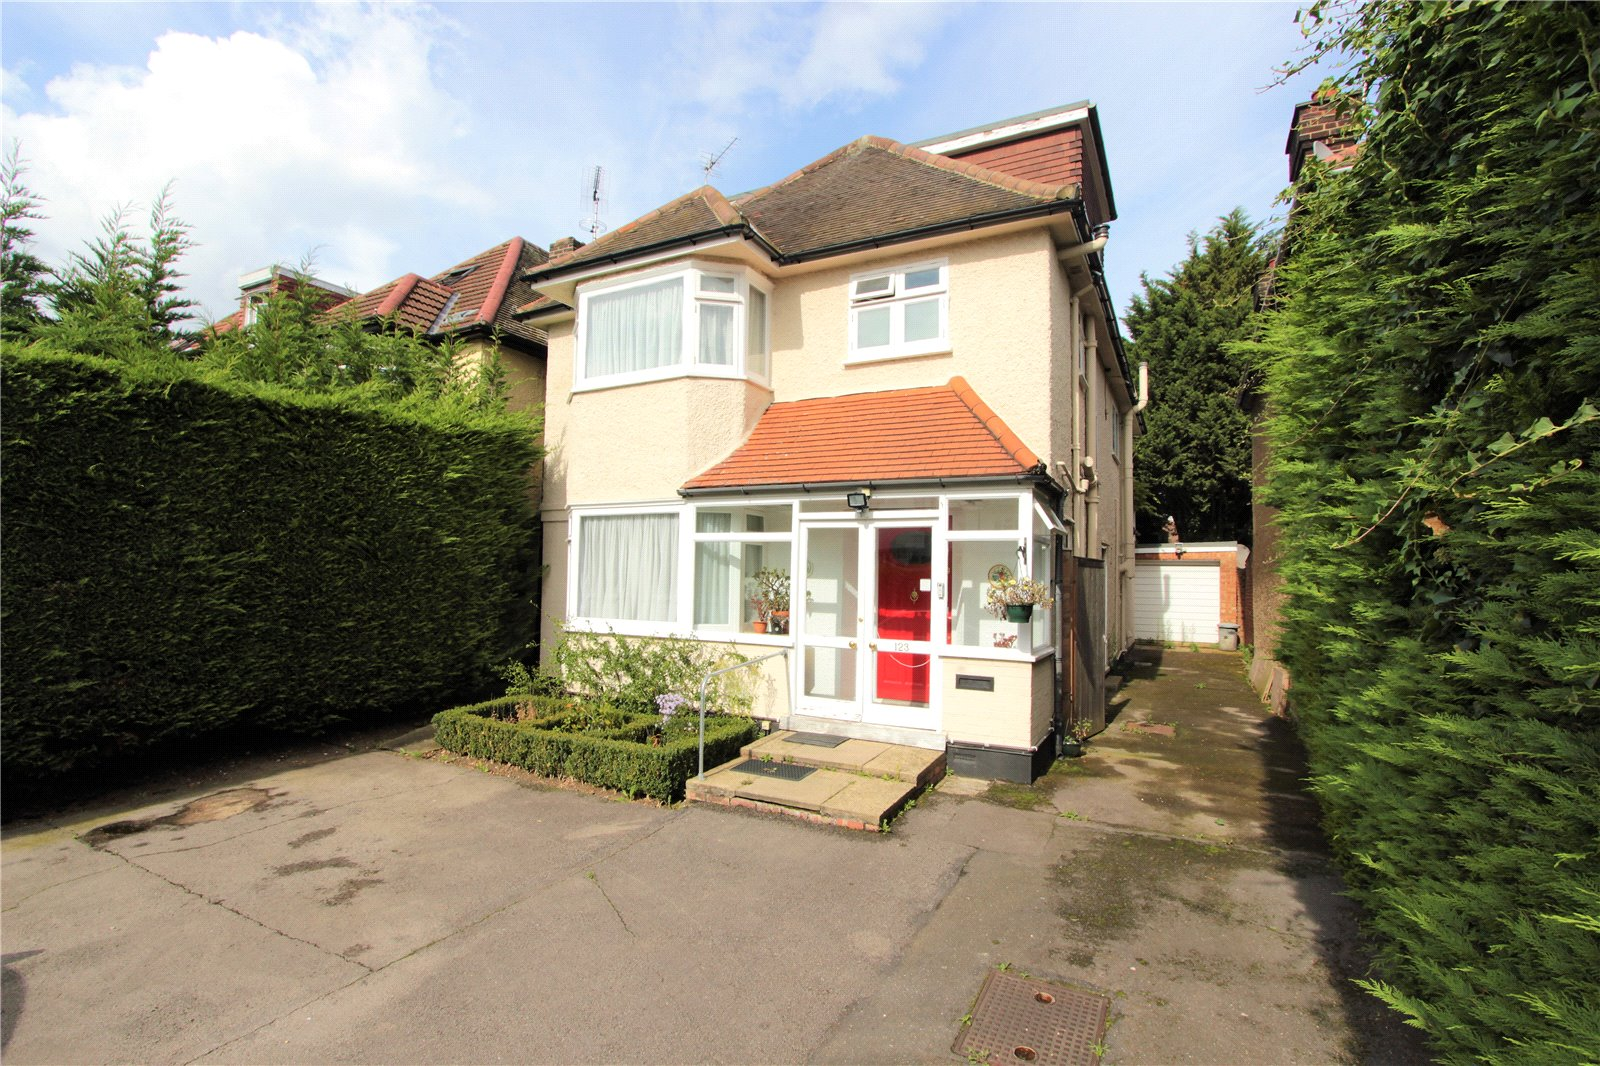 4 Bedrooms Detached House for sale in Chalkhill Road Wembley HA9